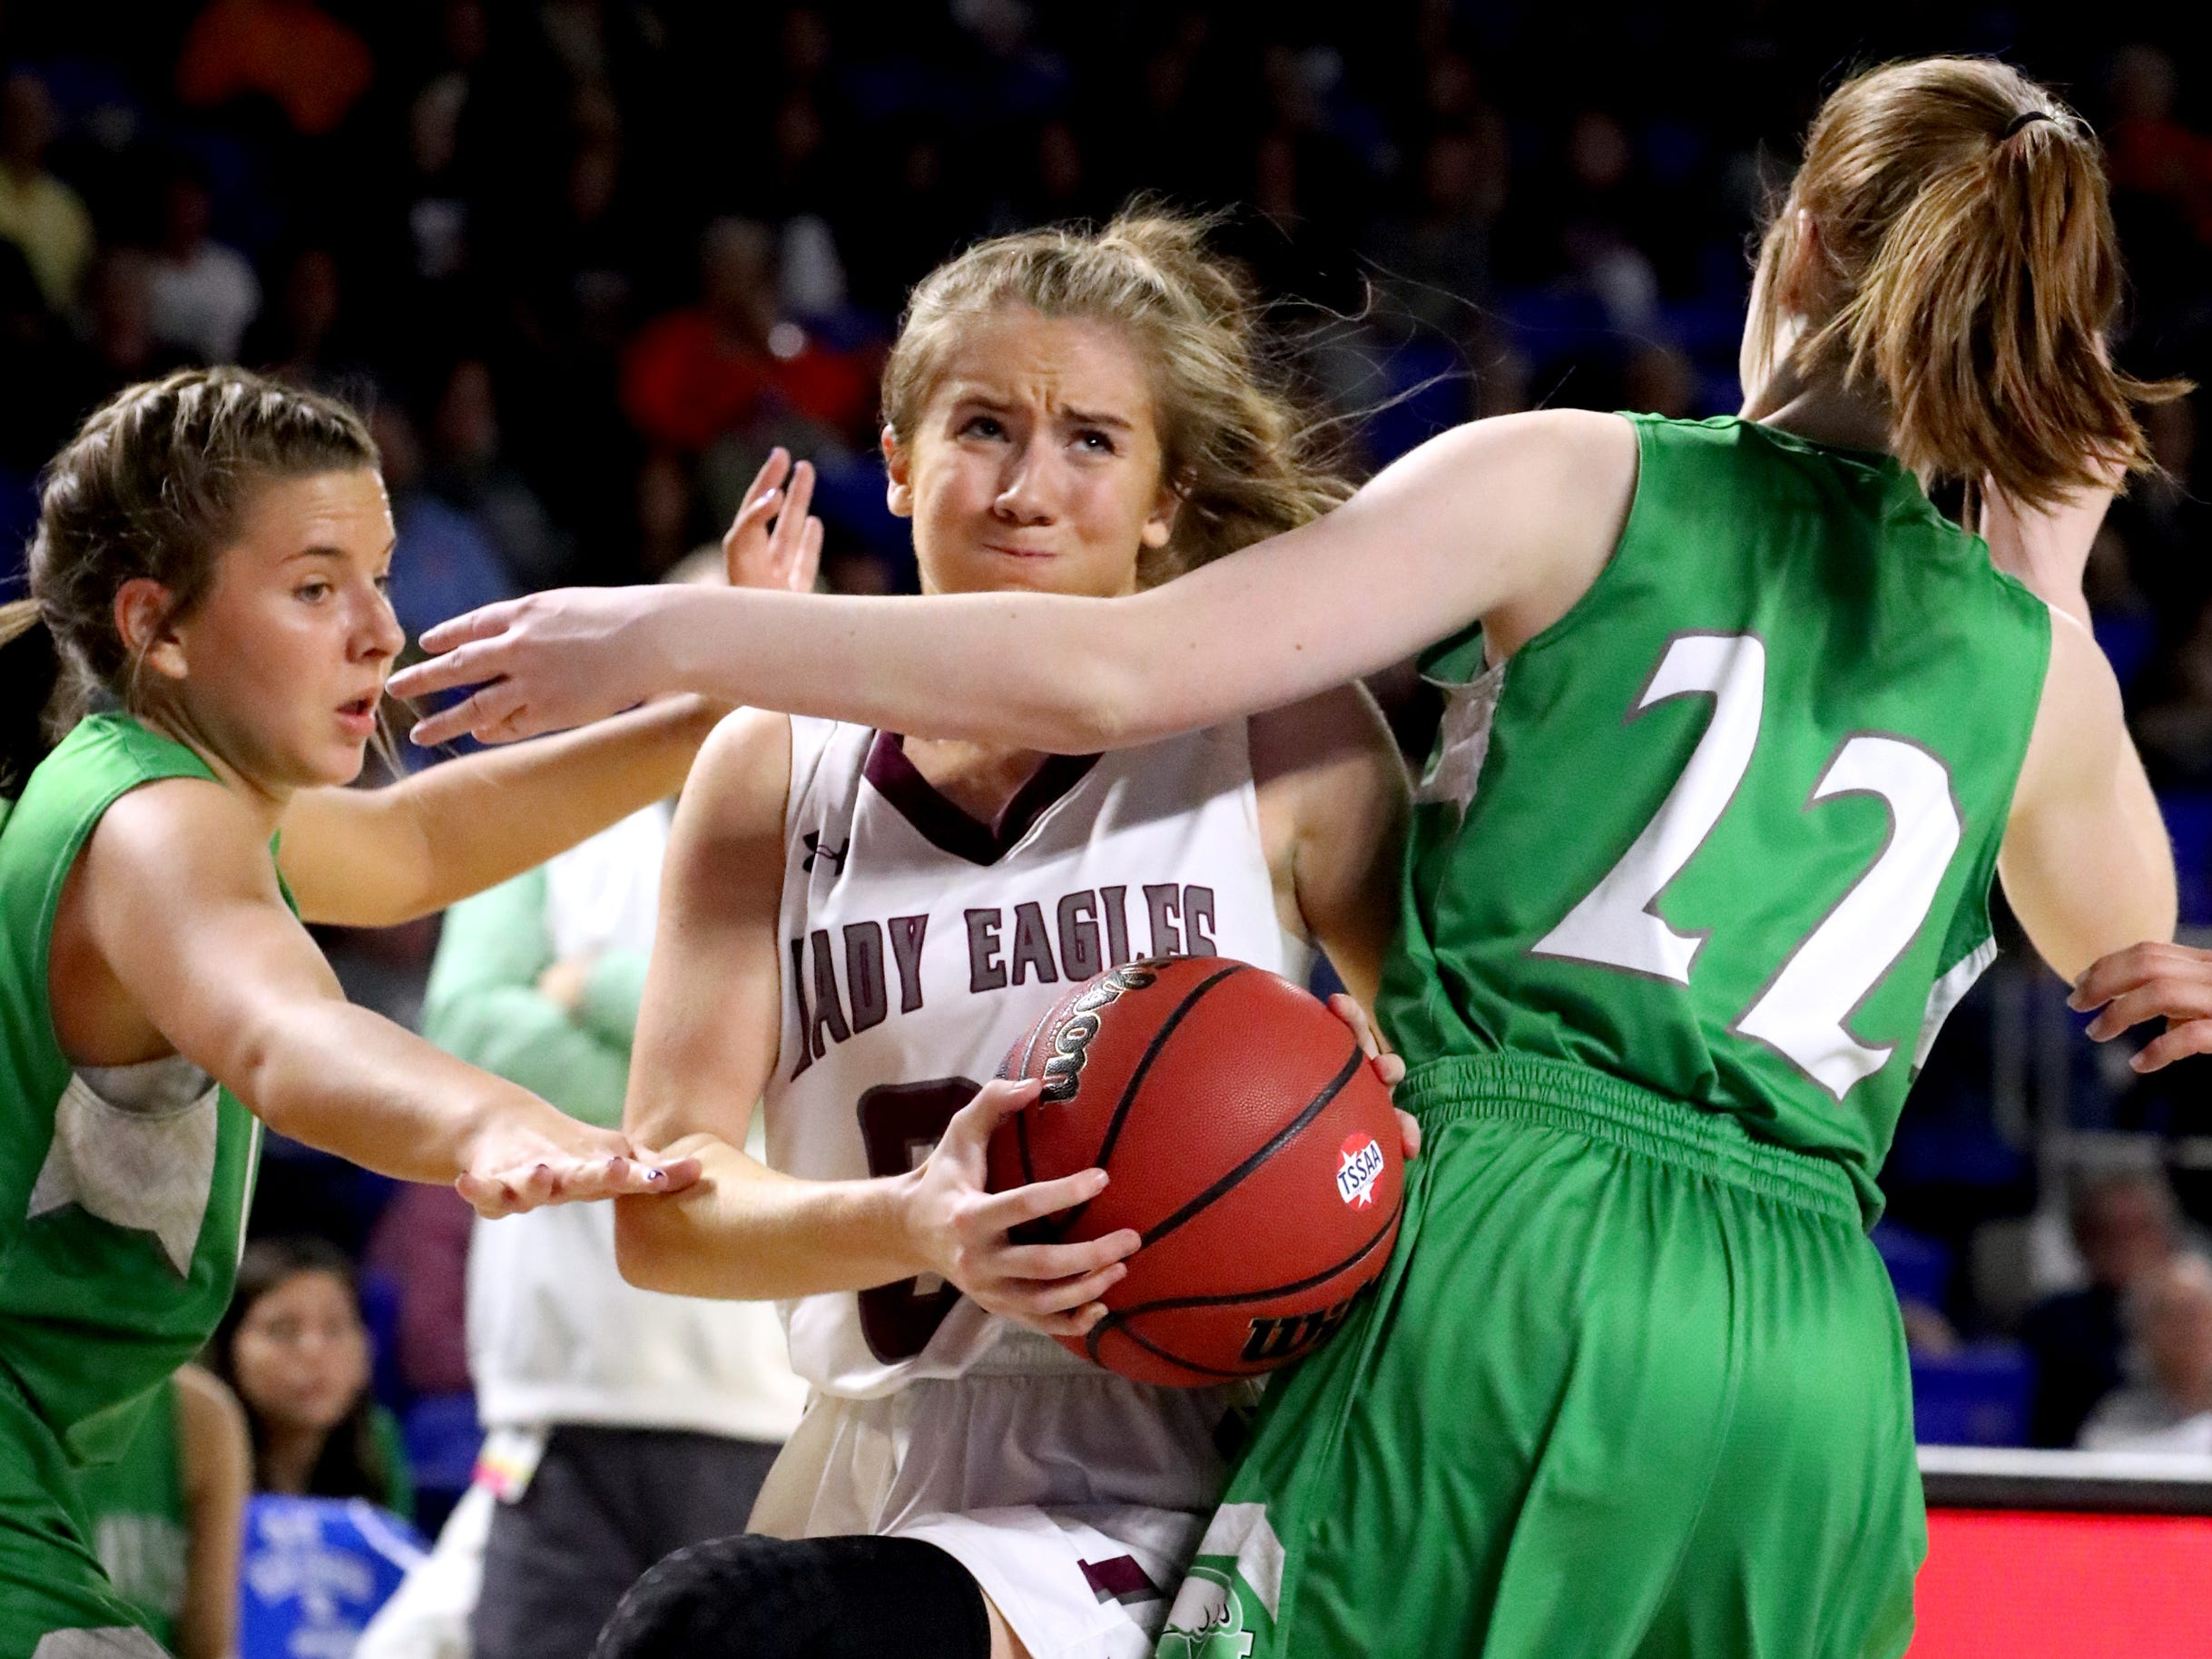 Eagleville's Haylee Ferguson (00) goes up for a shot between Midway's Rebecca Lemasters (3) and Emily Cawood (22) during the quarterfinal round of the TSSAA Div. 1 Class A Girls State Tournament, on Thursday, March 7, 2019, at Murphy Center in Murfreesboro, Tenn.